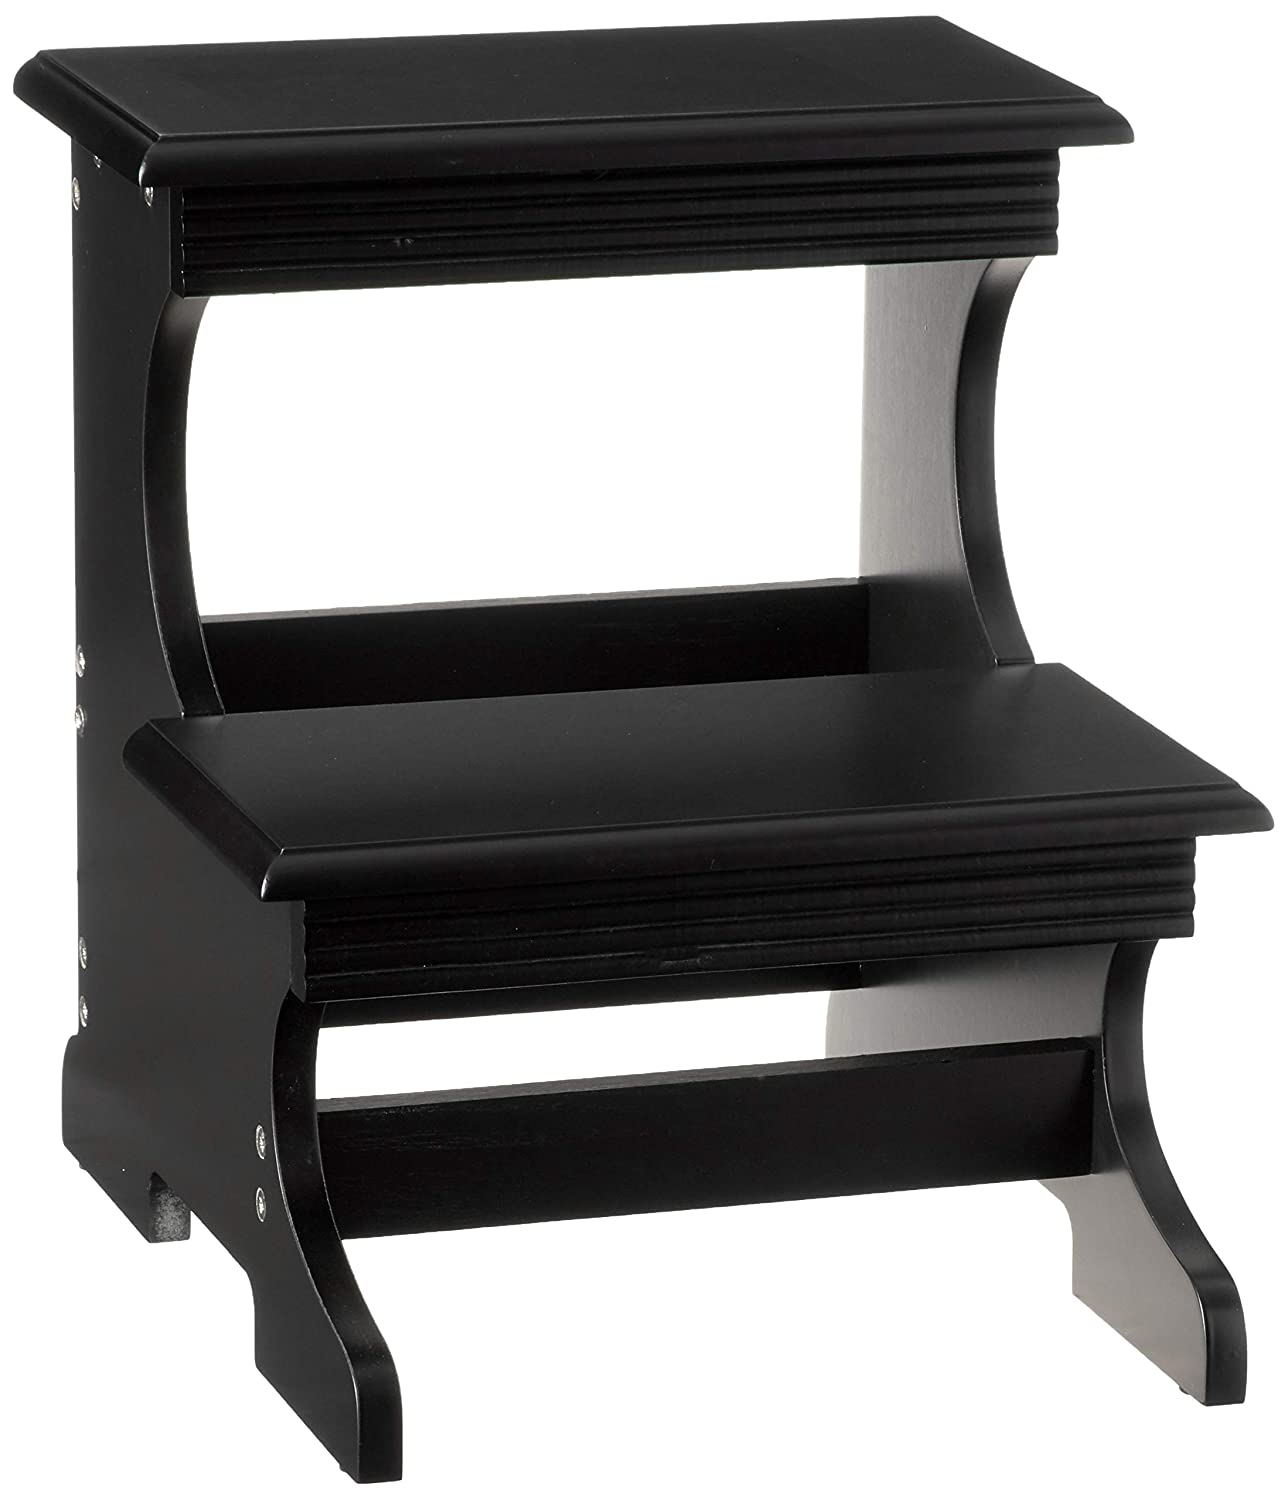 Frenchi Home Furnishing Step Stool, Black